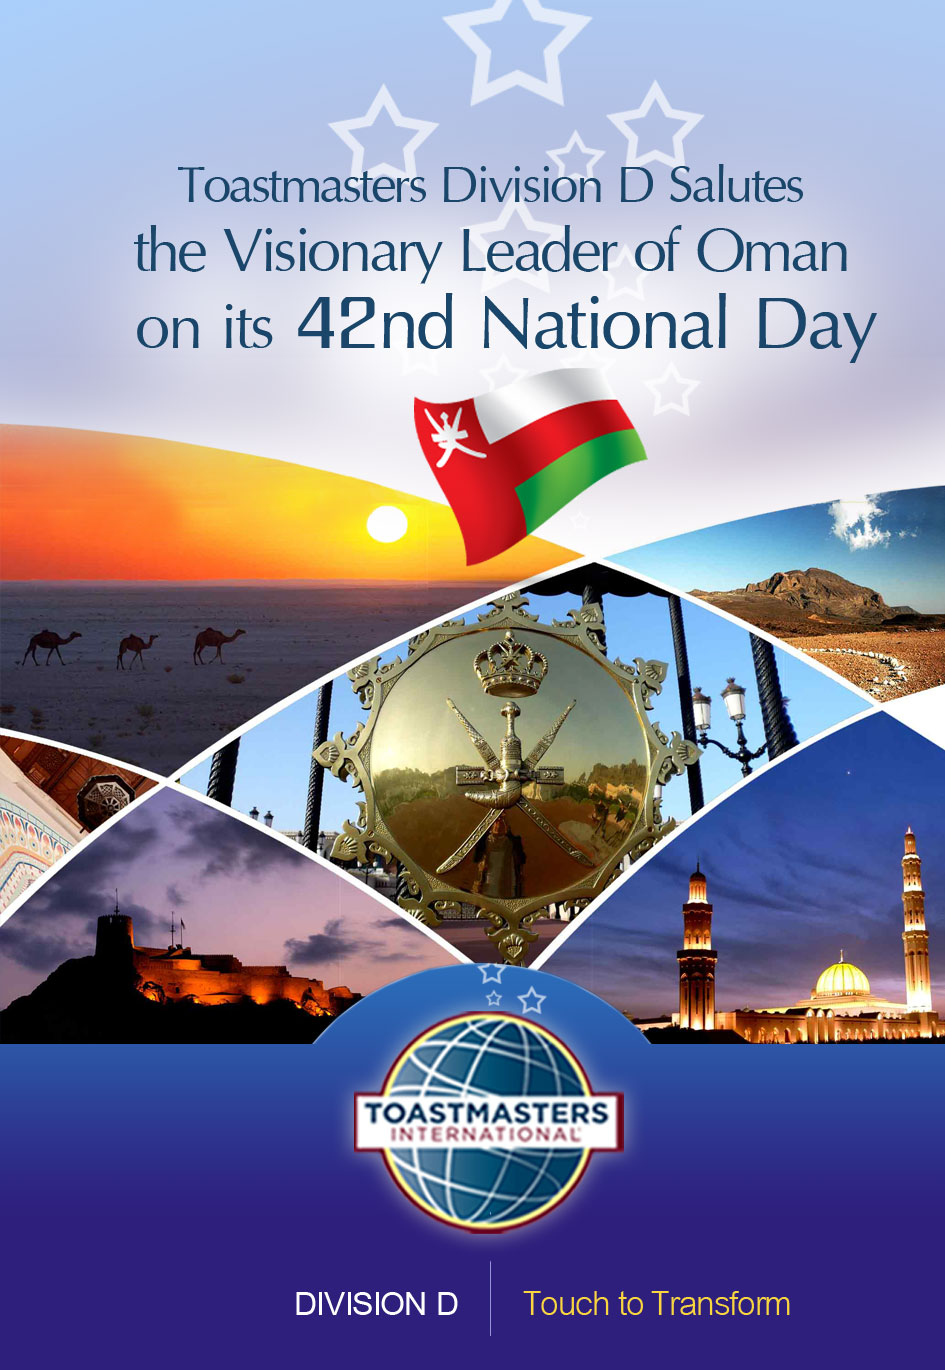 42nd national day greetings toastmasters international division d 42nd national day greetings m4hsunfo Images